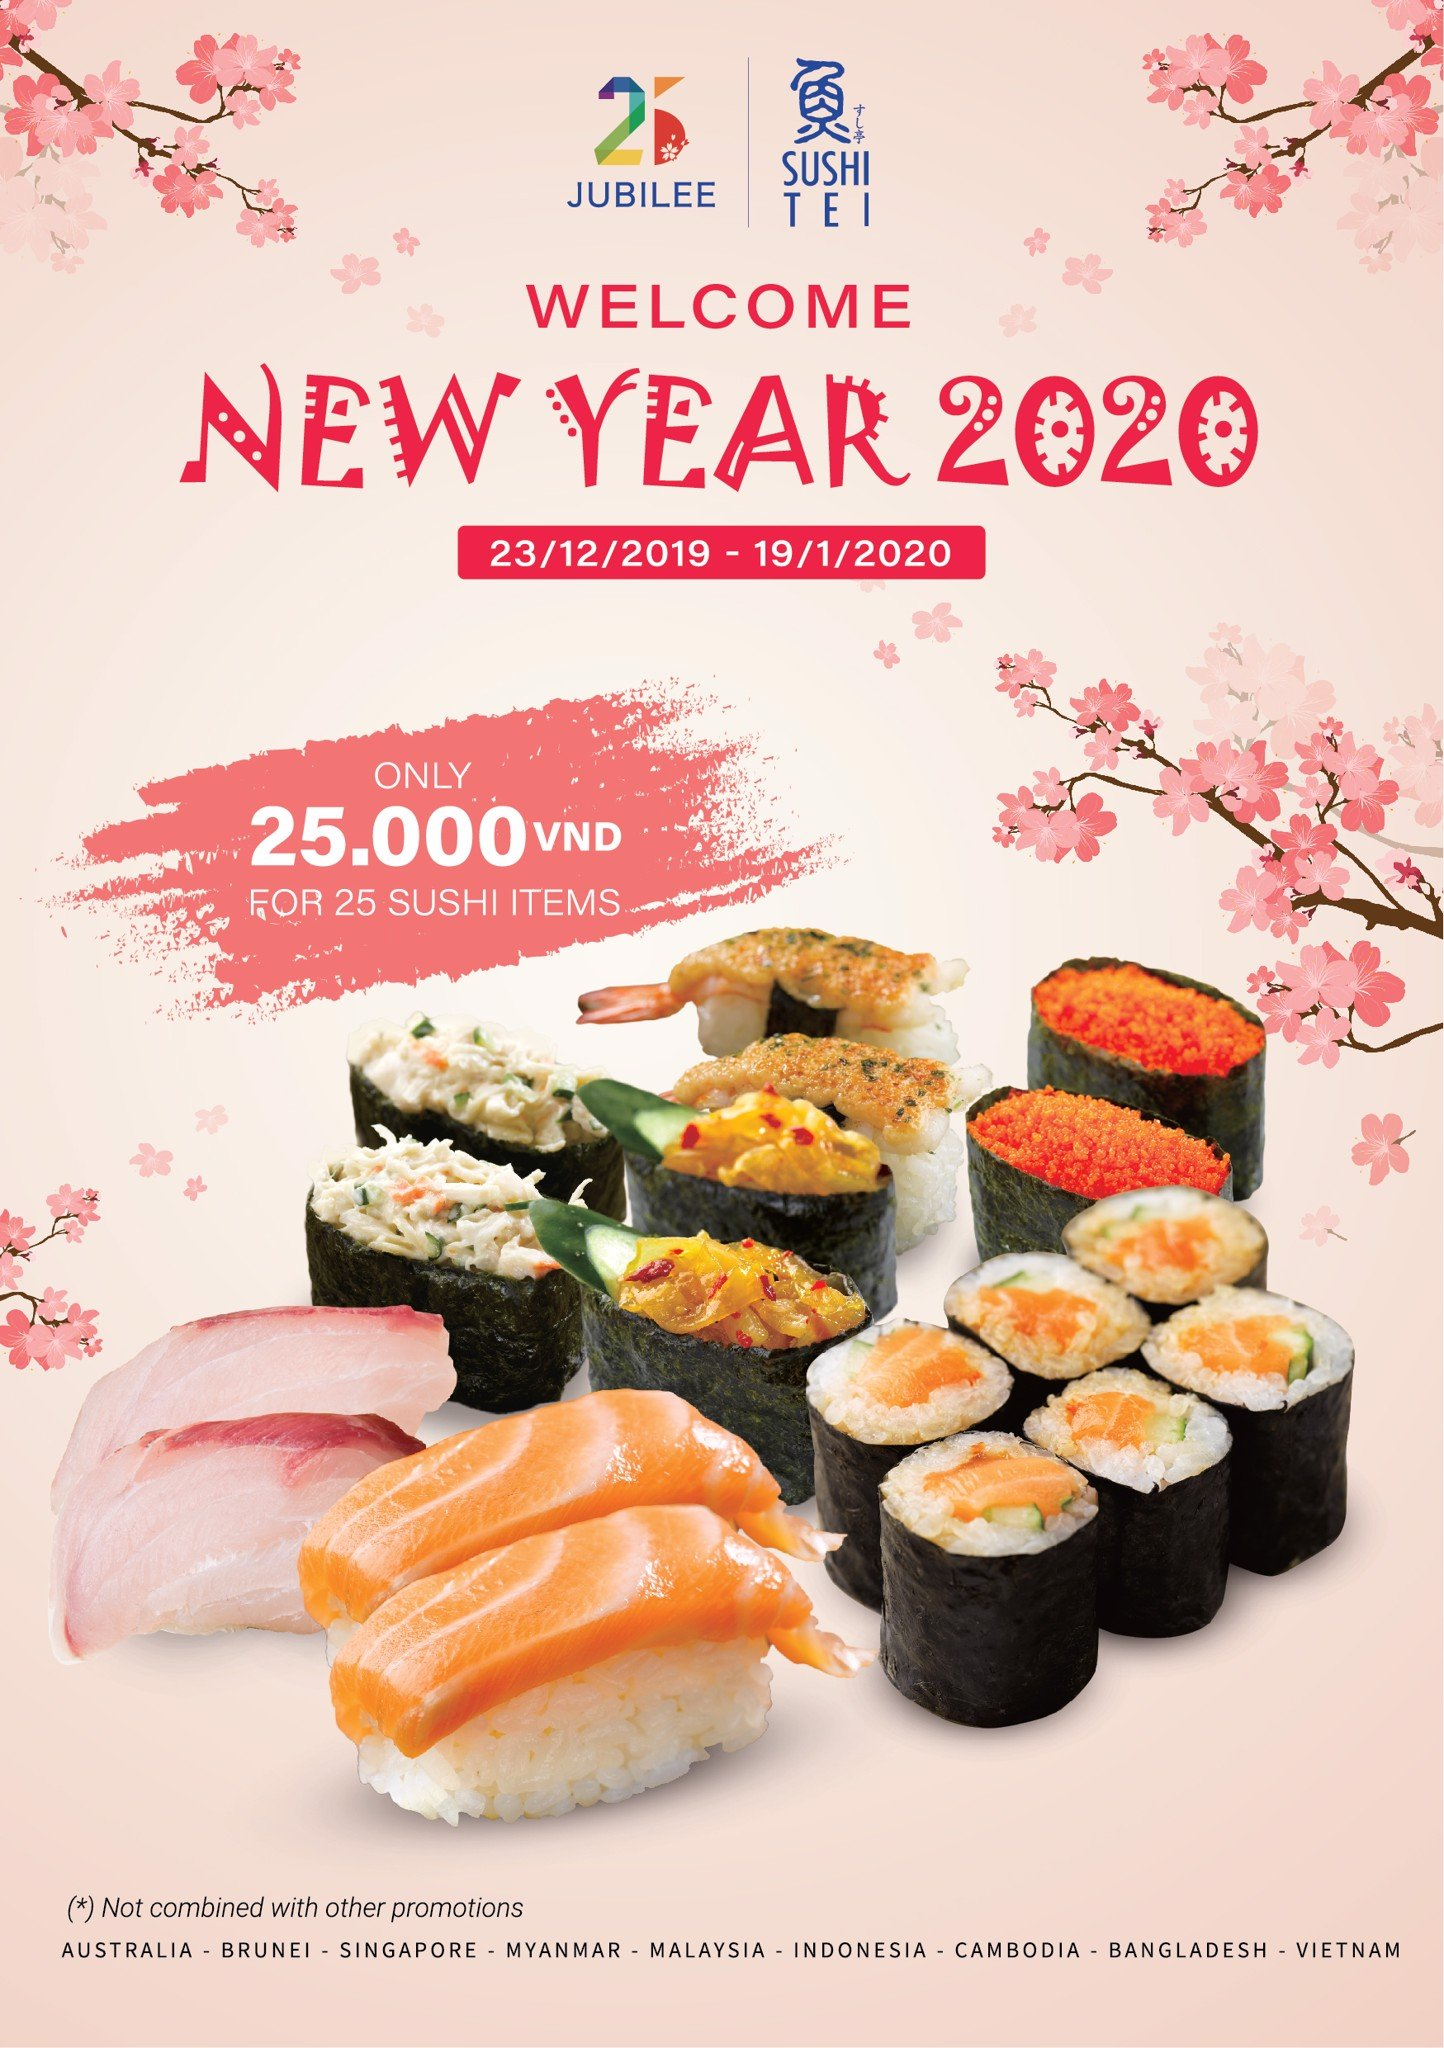 [25 SUSHI TEI JUBILEE EVENTS] 25 SUSHI ITEMS WITH 25,000VND FOR 25 SUSHI TEI BRAND